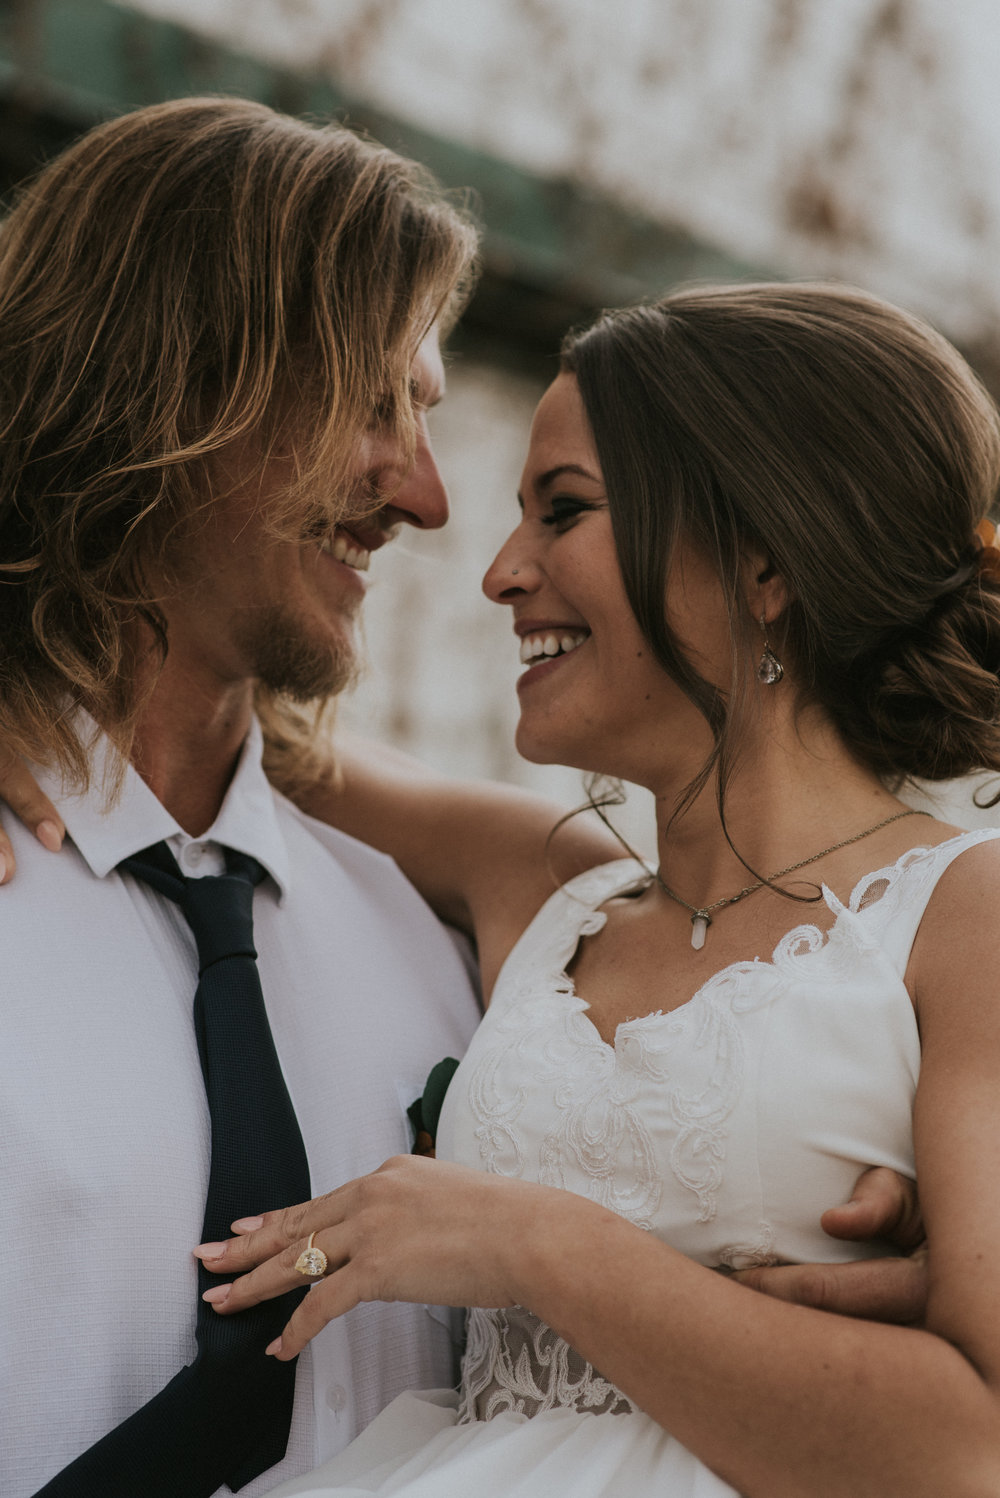 Boho wedding photography based in Denver, Colorado